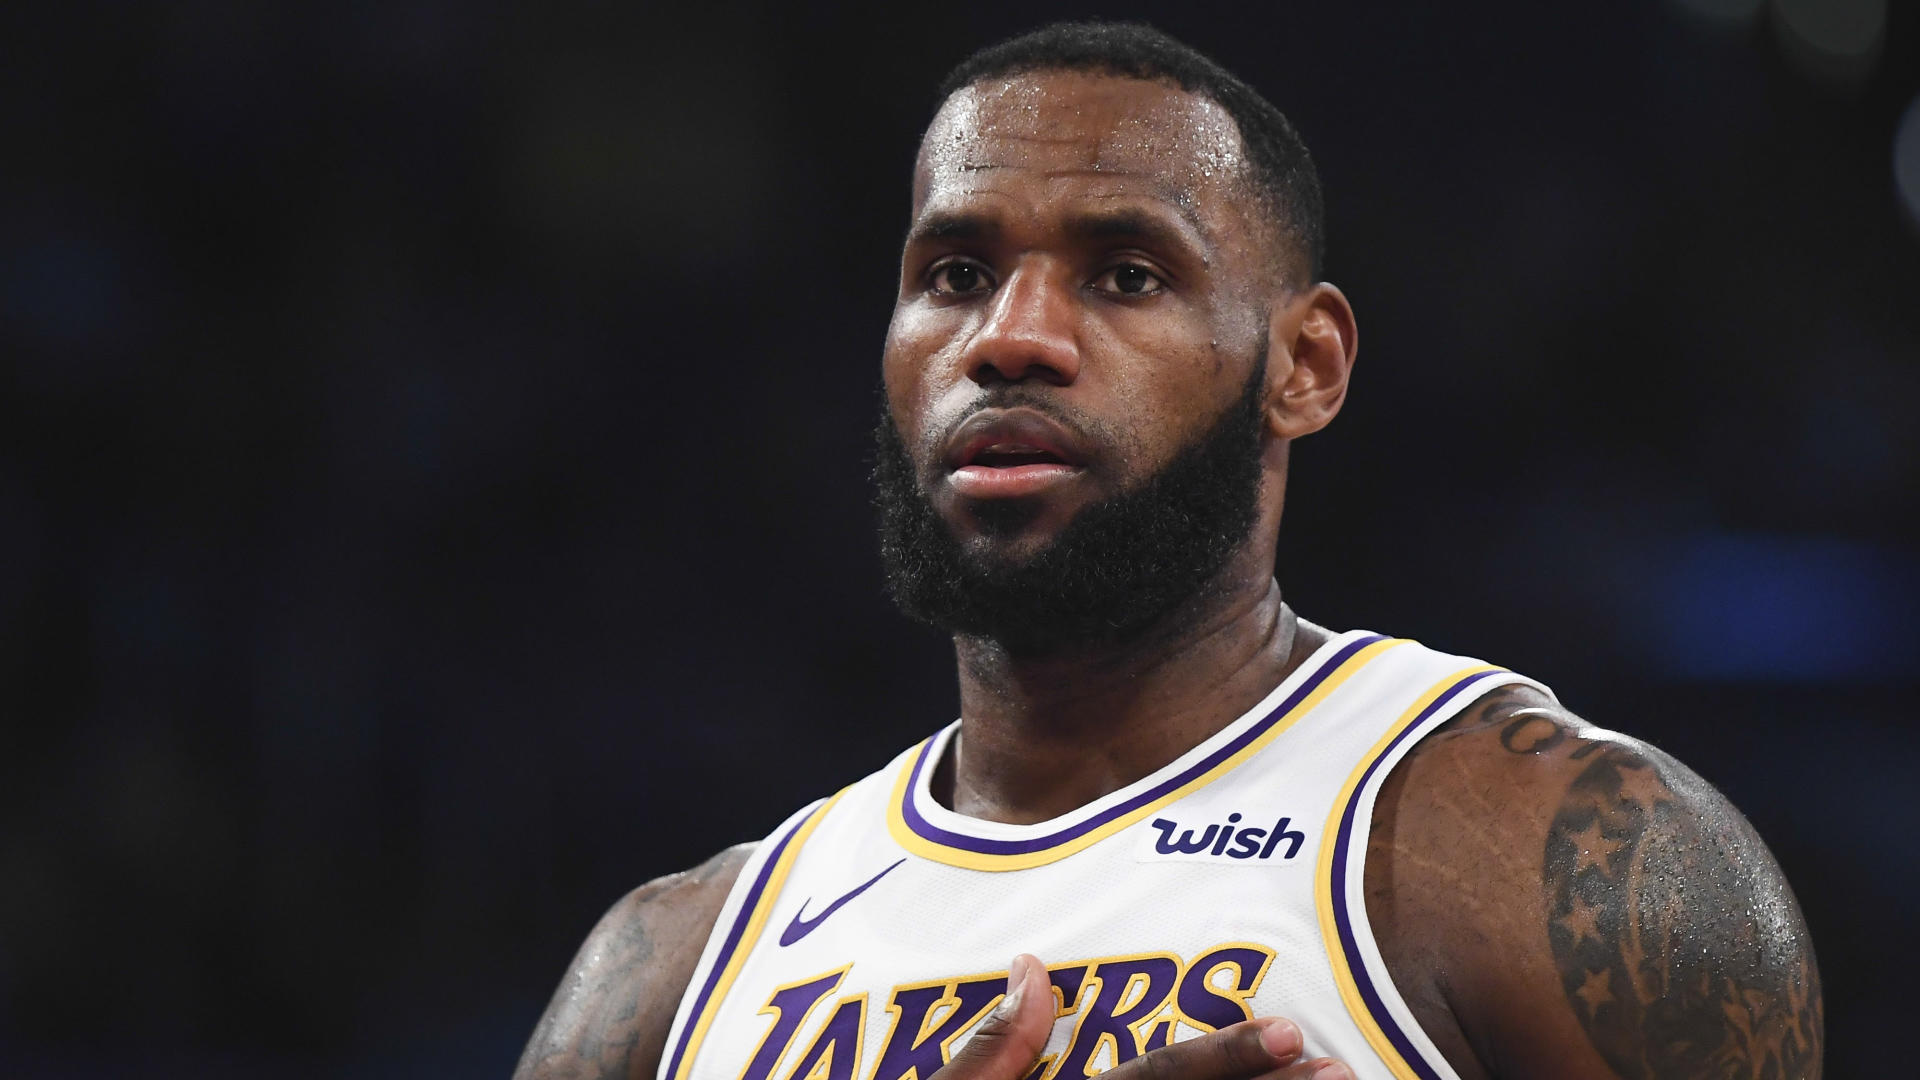 NBA scores, highlights: Bucks best Celtics while LeBron rallies Lakers past Harden and Rockets